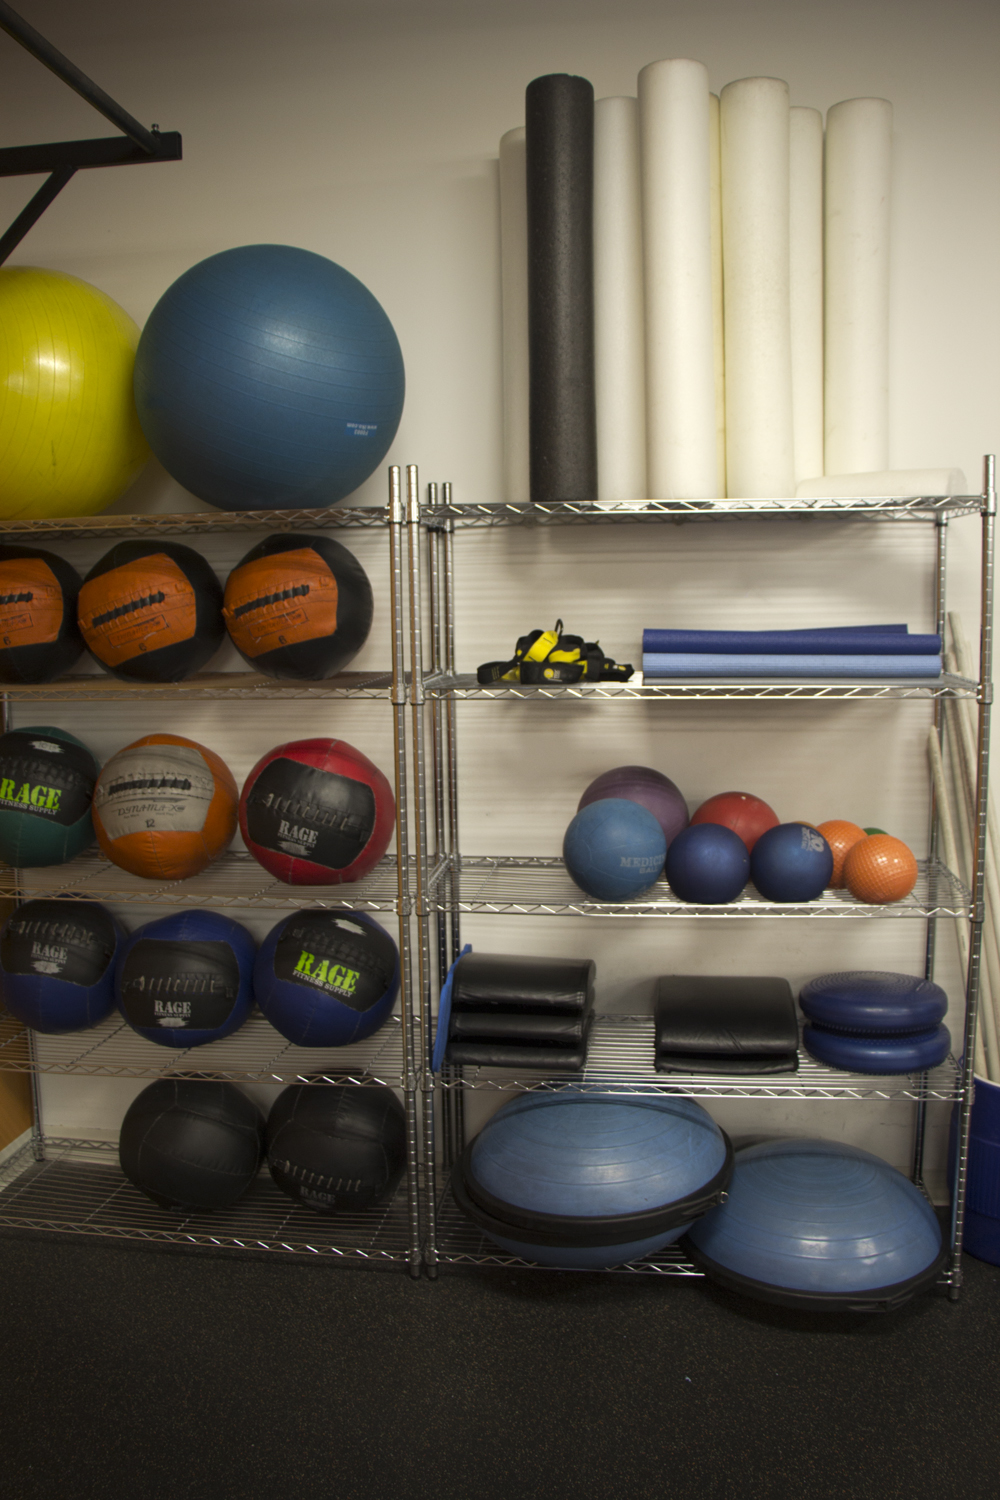 Medicine Balls & More - Grab a medicine ball, ab mat or boccu ball for your own workout. Then relax stiff muscles with a foam roller.